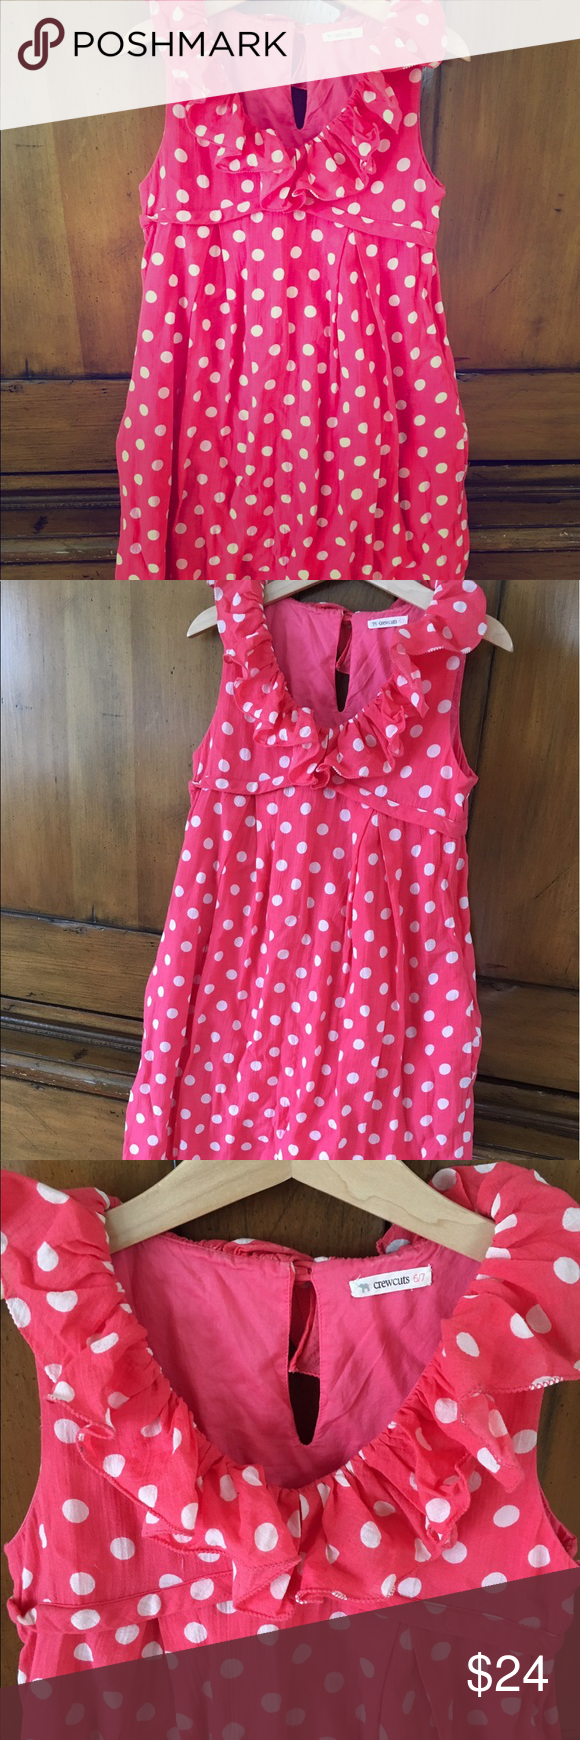 J Crew Crewcuts Girls polkadot pink dress 6/7 yrs This is a hardly worn polkadot pink and white frilly beautifully made dress by Crewcuts J Crew. Size 6/7. No flaws or signs of wear except for one little spot where there's a small snag (see last pic). Thanks for looking! j Crew Dresses Formal